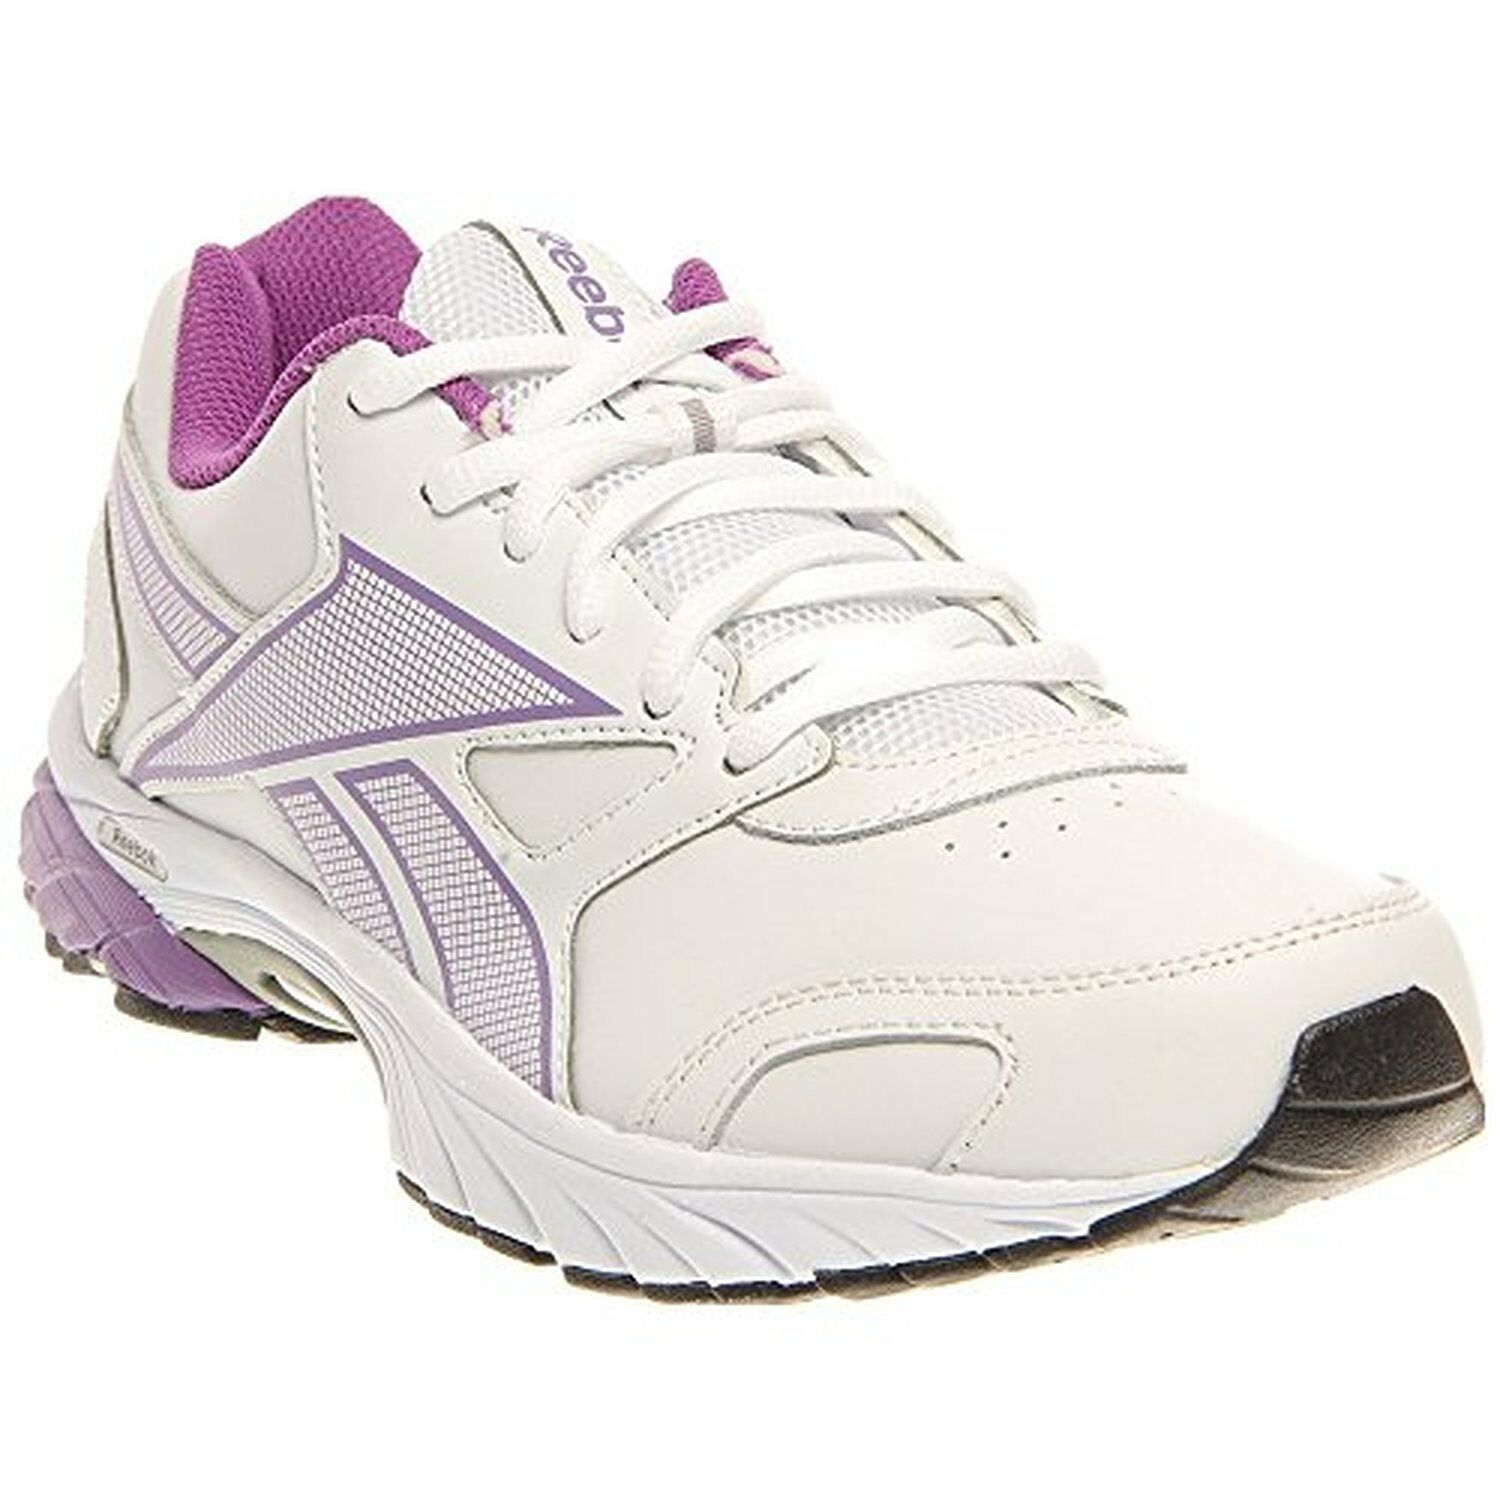 Reebok Womens Triplehall Running Casual Walking shoes White Purple All Sizes